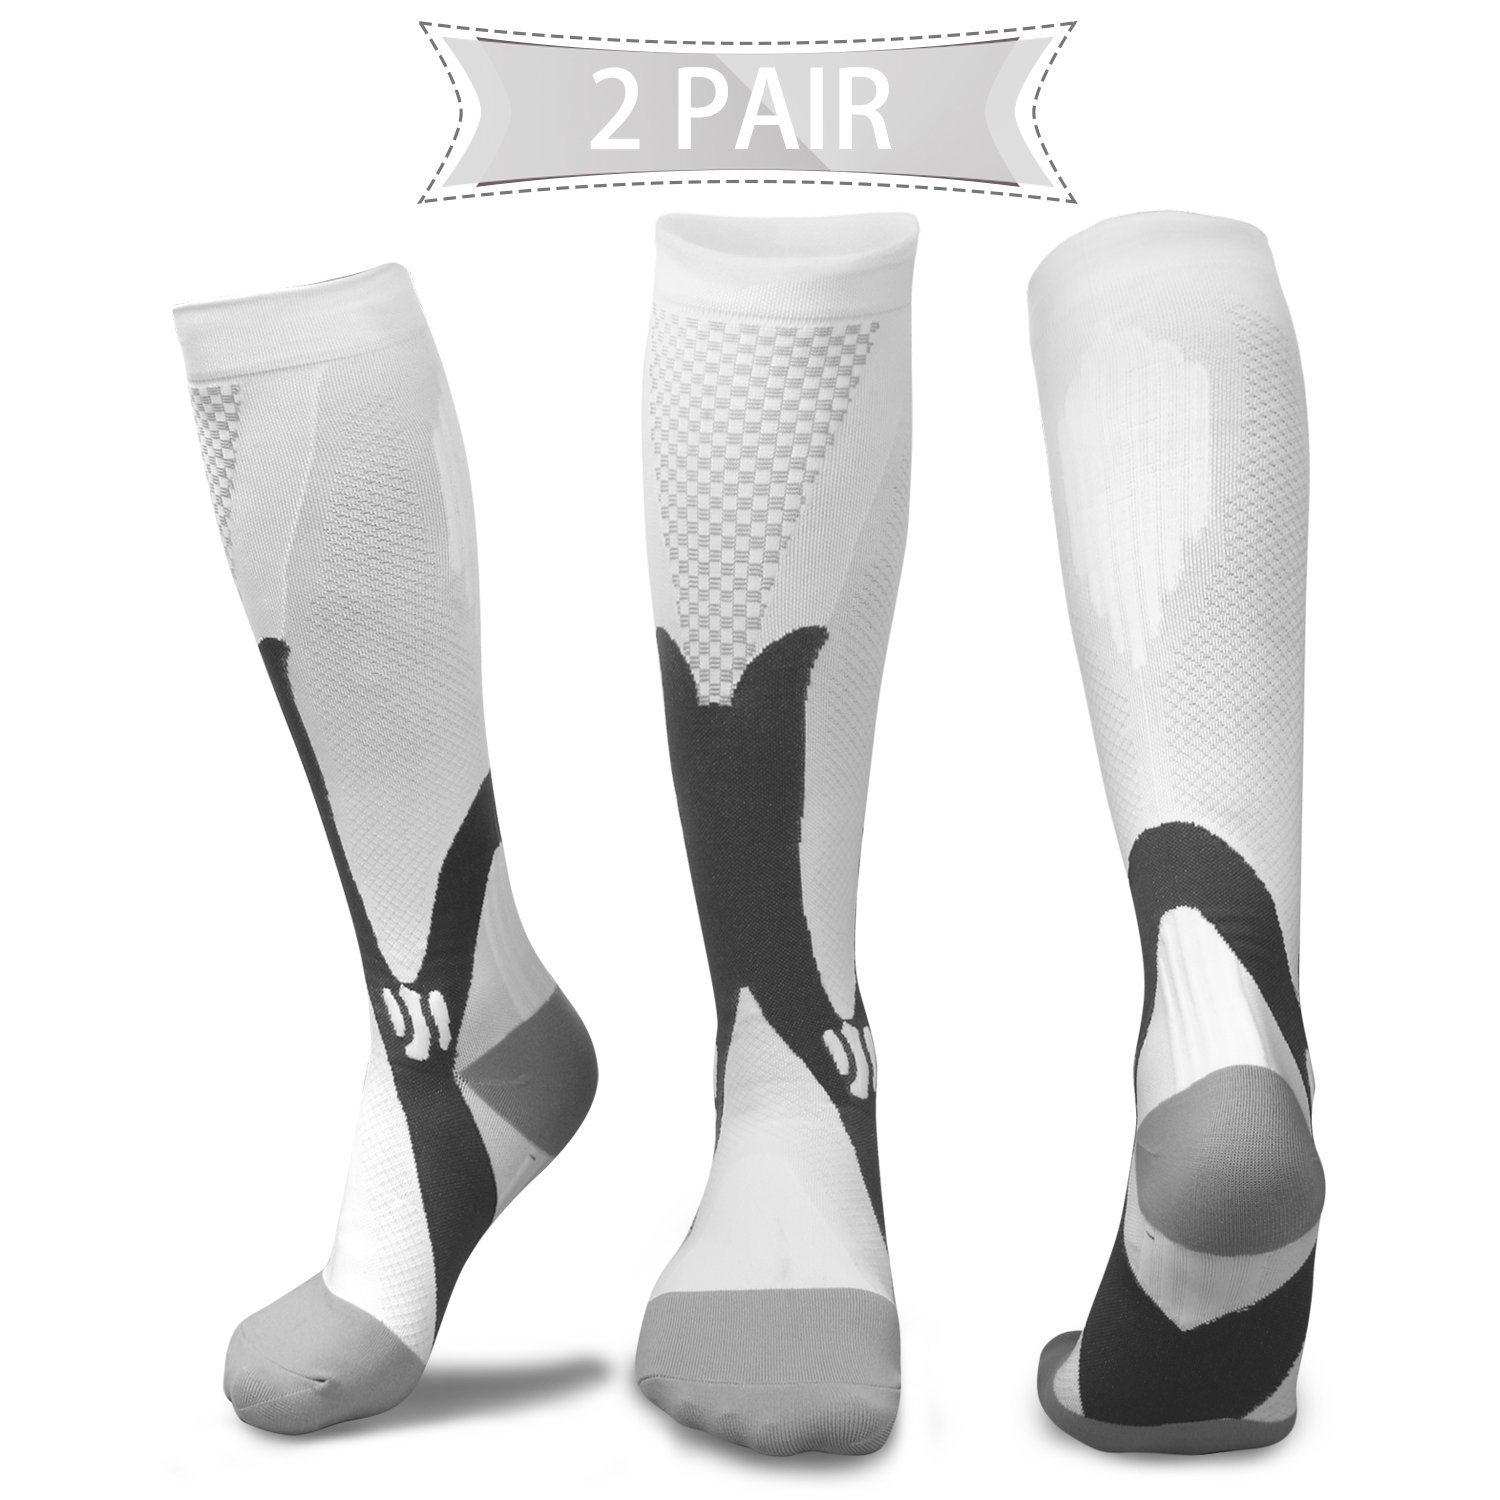 0652d810f0 Compression Socks for Men & Women(2 Pairs), BEST Medical Grade Graduated  Recovery